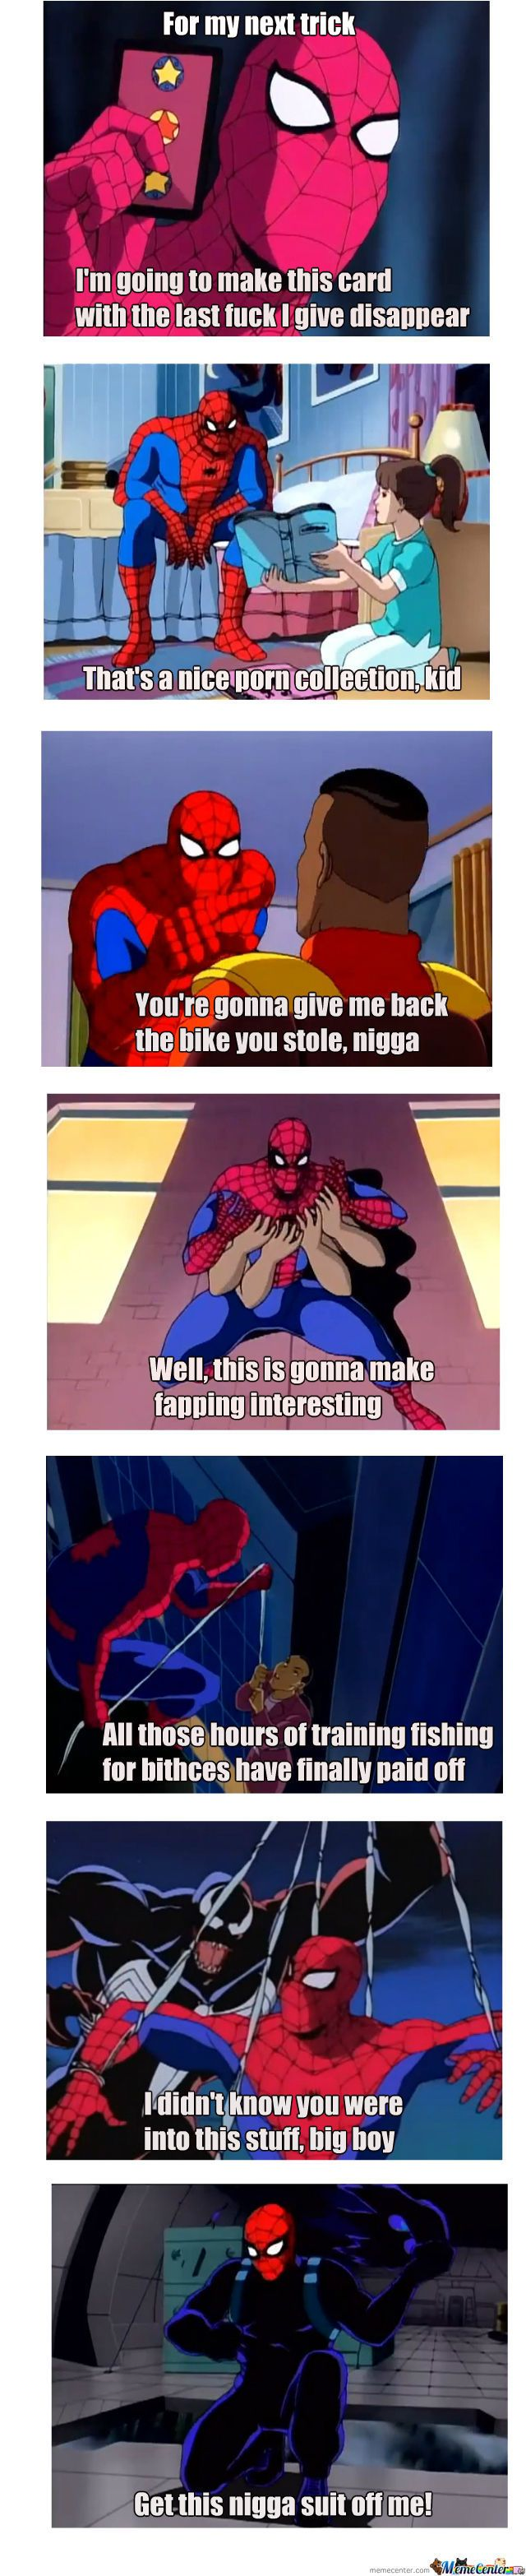 90 S Spider Man 60 S Style Spiderman Meme Funny Pictures Funny Marvel Memes